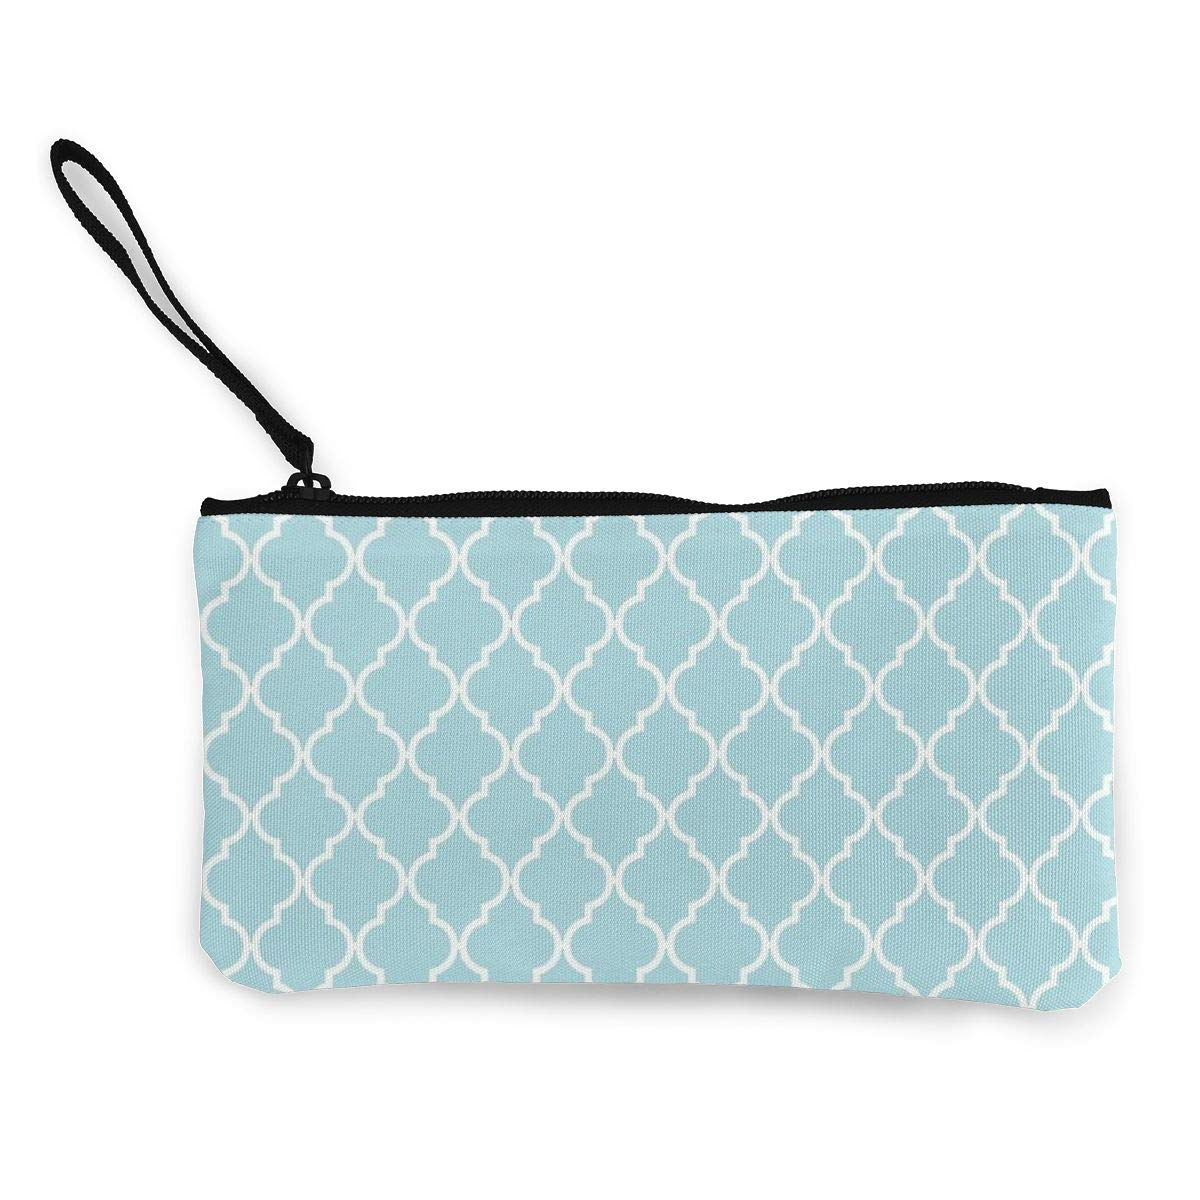 Yamini Moroccan Trellis Latticework Blue White Cute Looking Coin Purse Small and Exquisite Going Out to Carry Purse